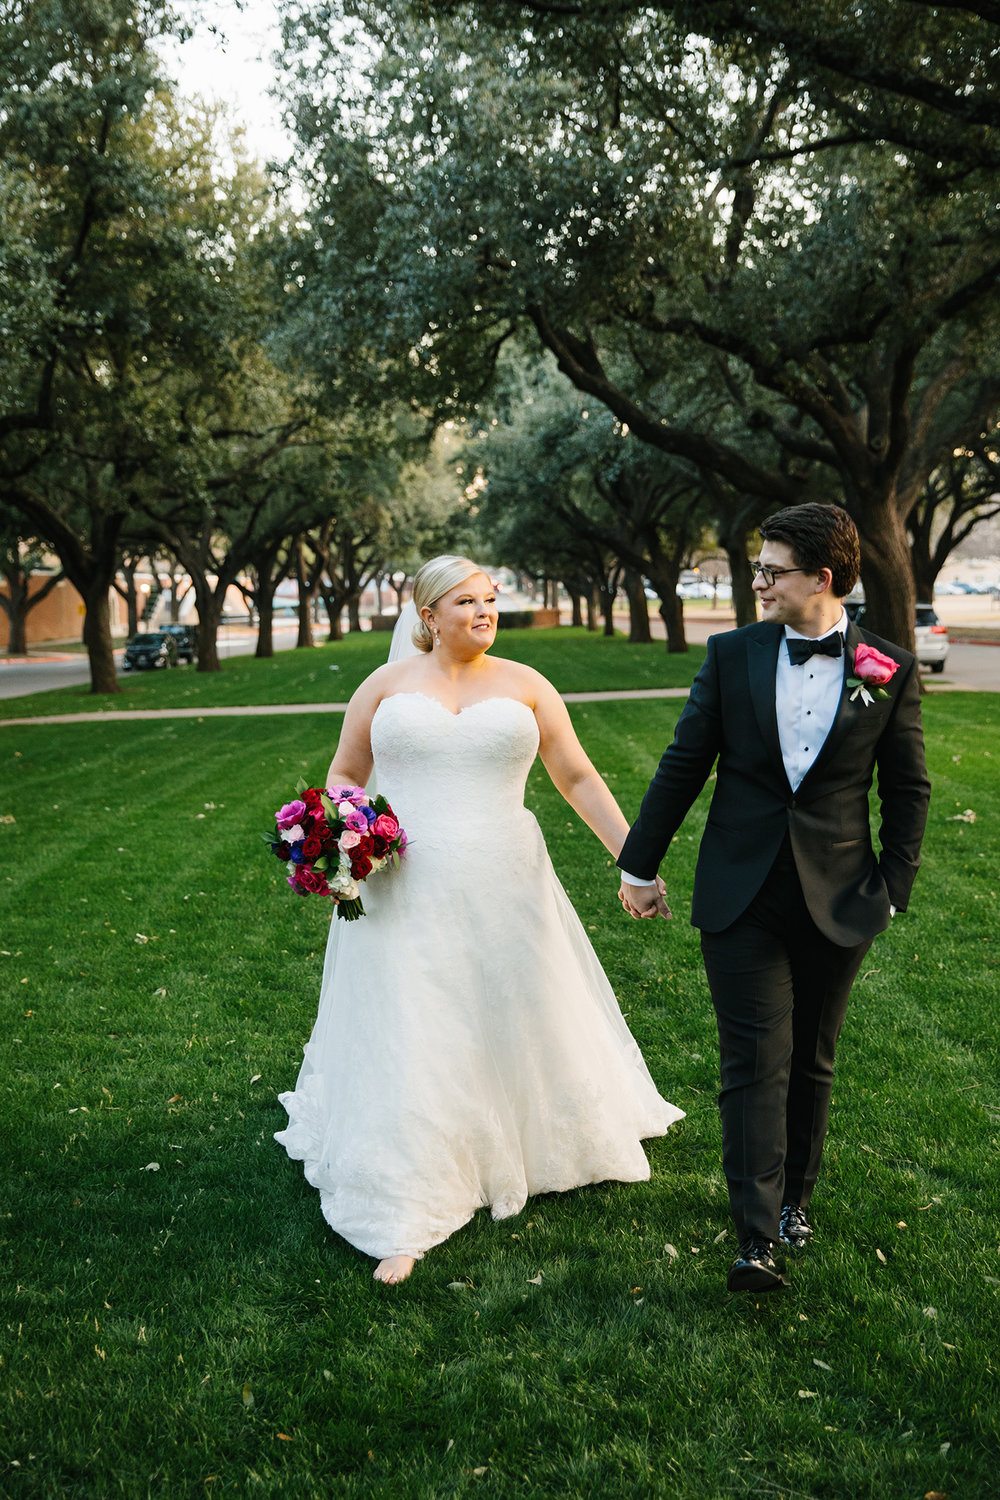 Dallas Weddings Planner - Allday Events - Katie + Matthew at The Adolphus Hotel - 475.jpg